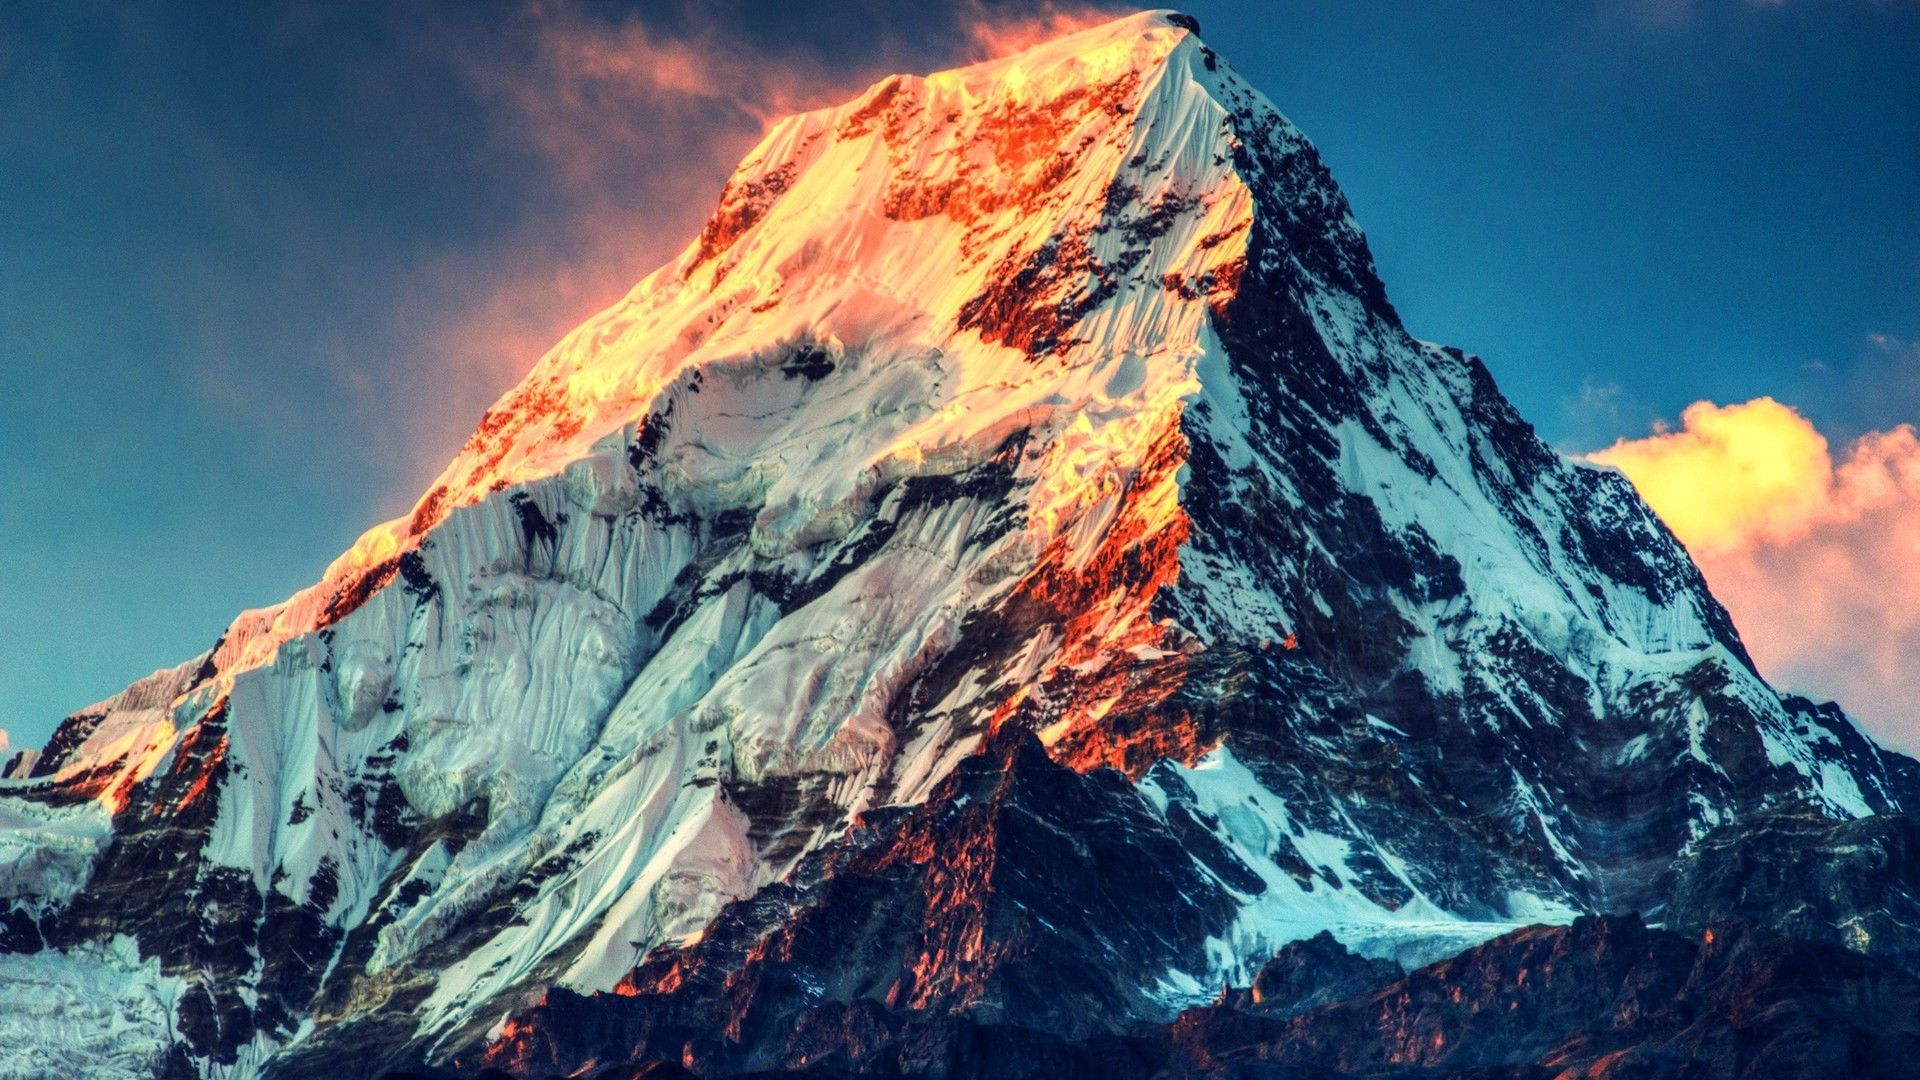 mount everest wide high definition wallpaper download mount 1920x1080